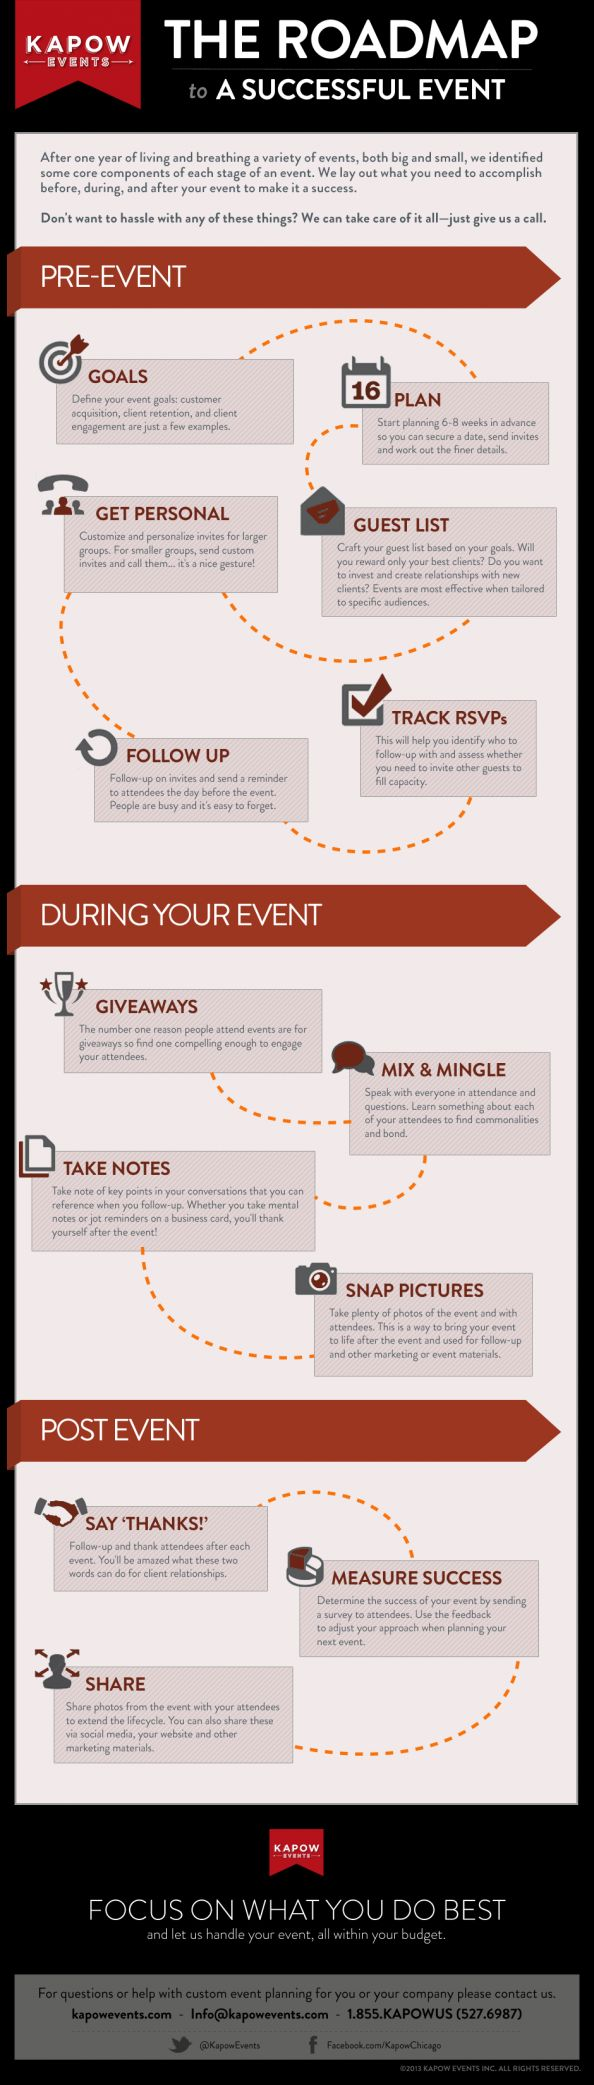 The Roadmap to a Successful #Event